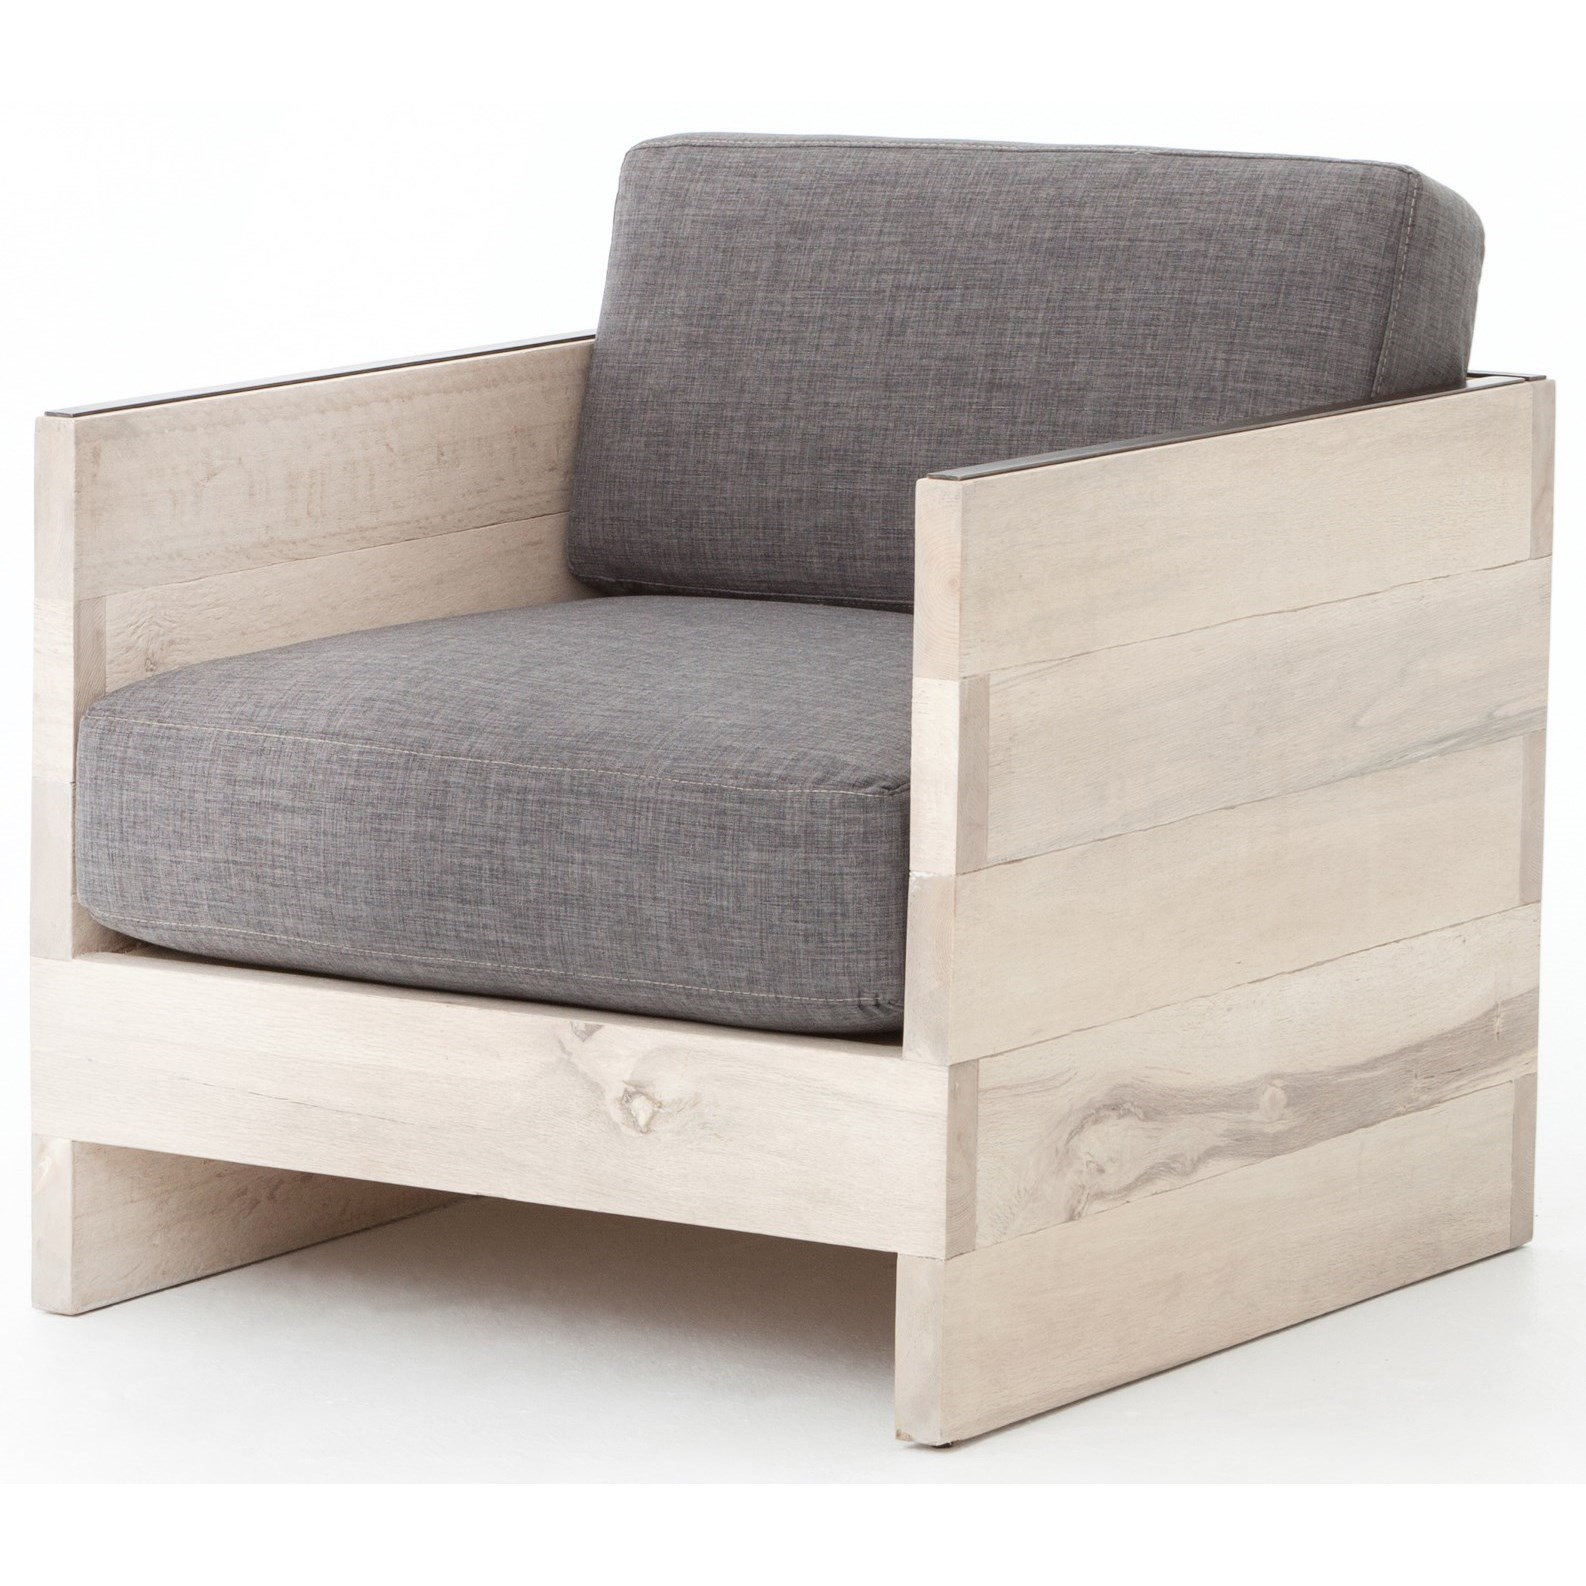 Wesson Franklin Chair by Interior Style at Sprintz Furniture